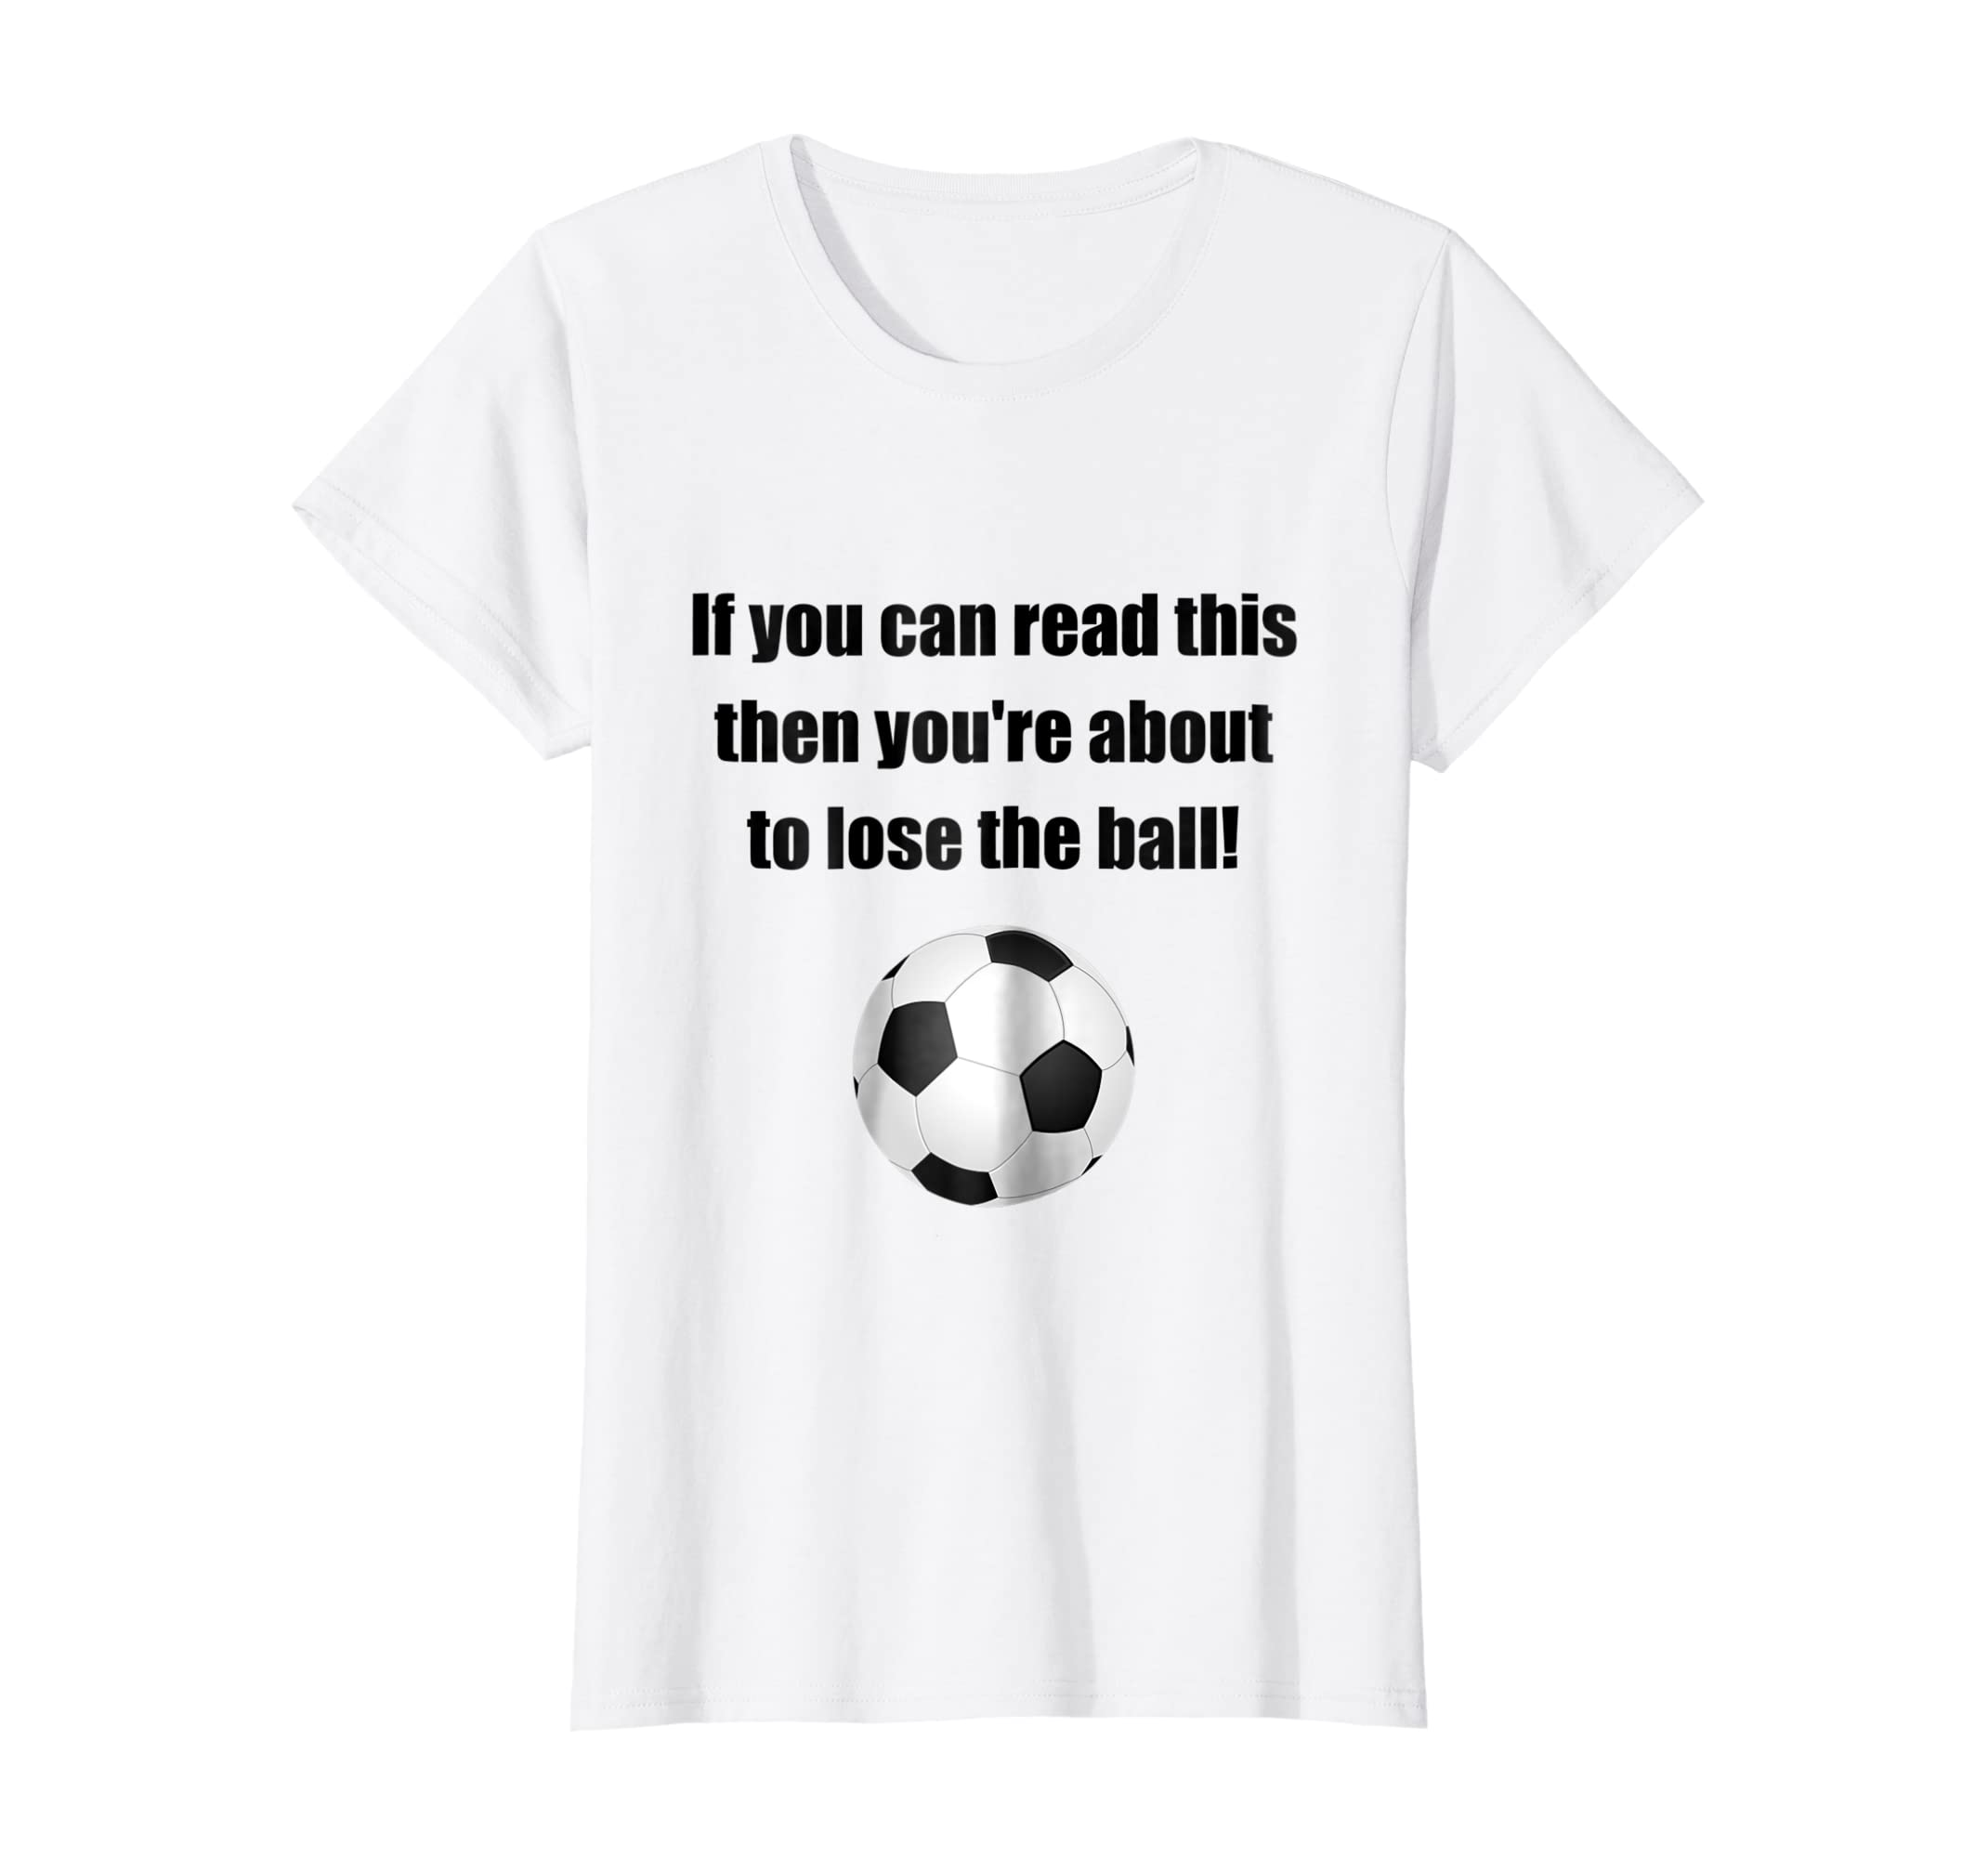 ea533af81 Amazon.com: Lose The Ball Soccer Funny T-Shirt: Clothing